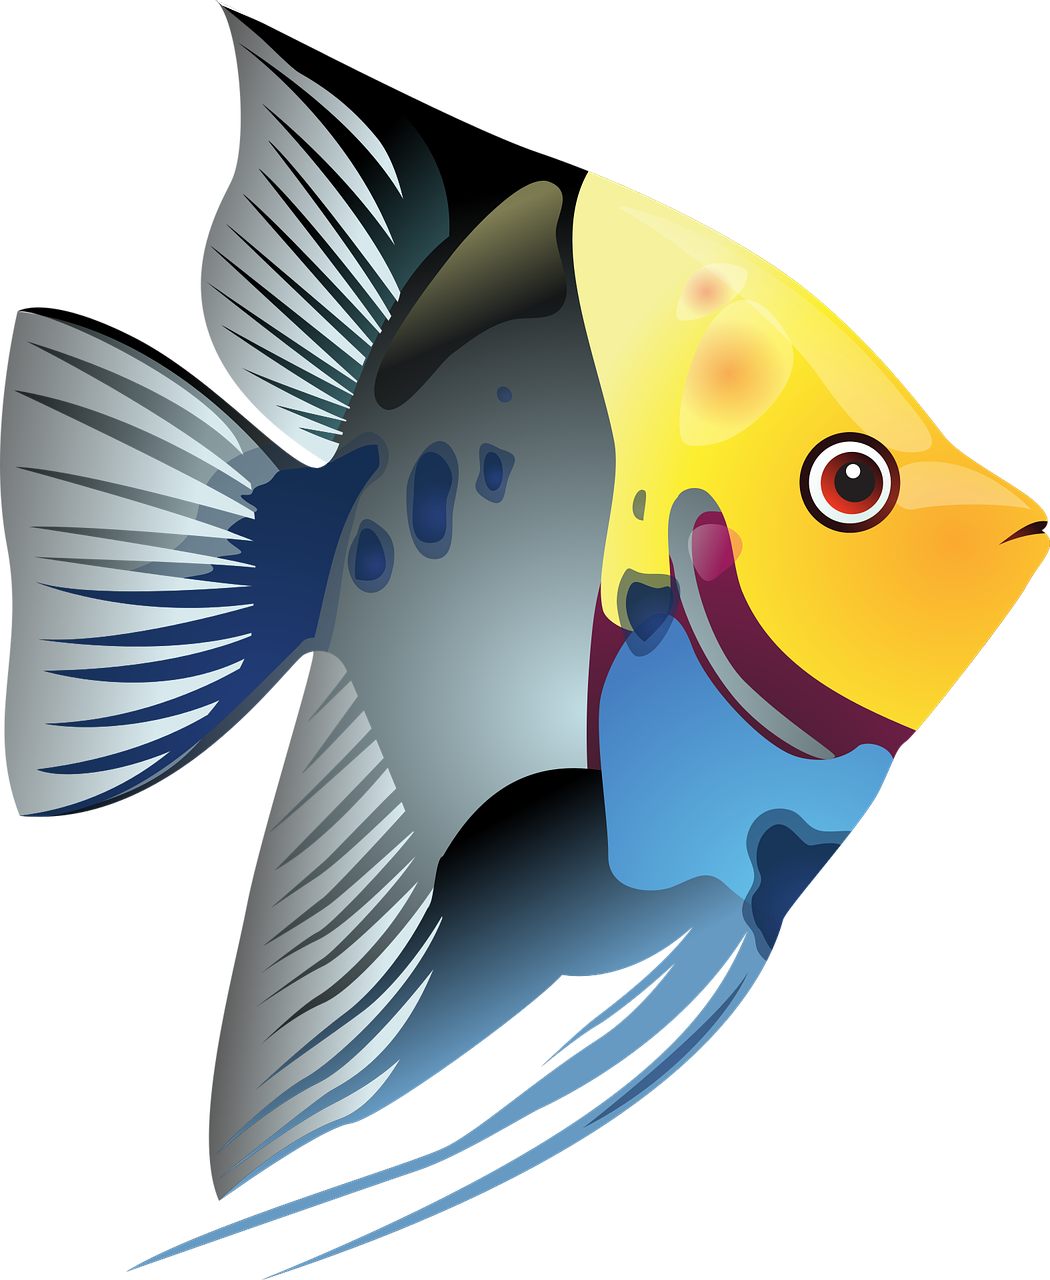 Clipart fish easy. Simple drawing at getdrawings